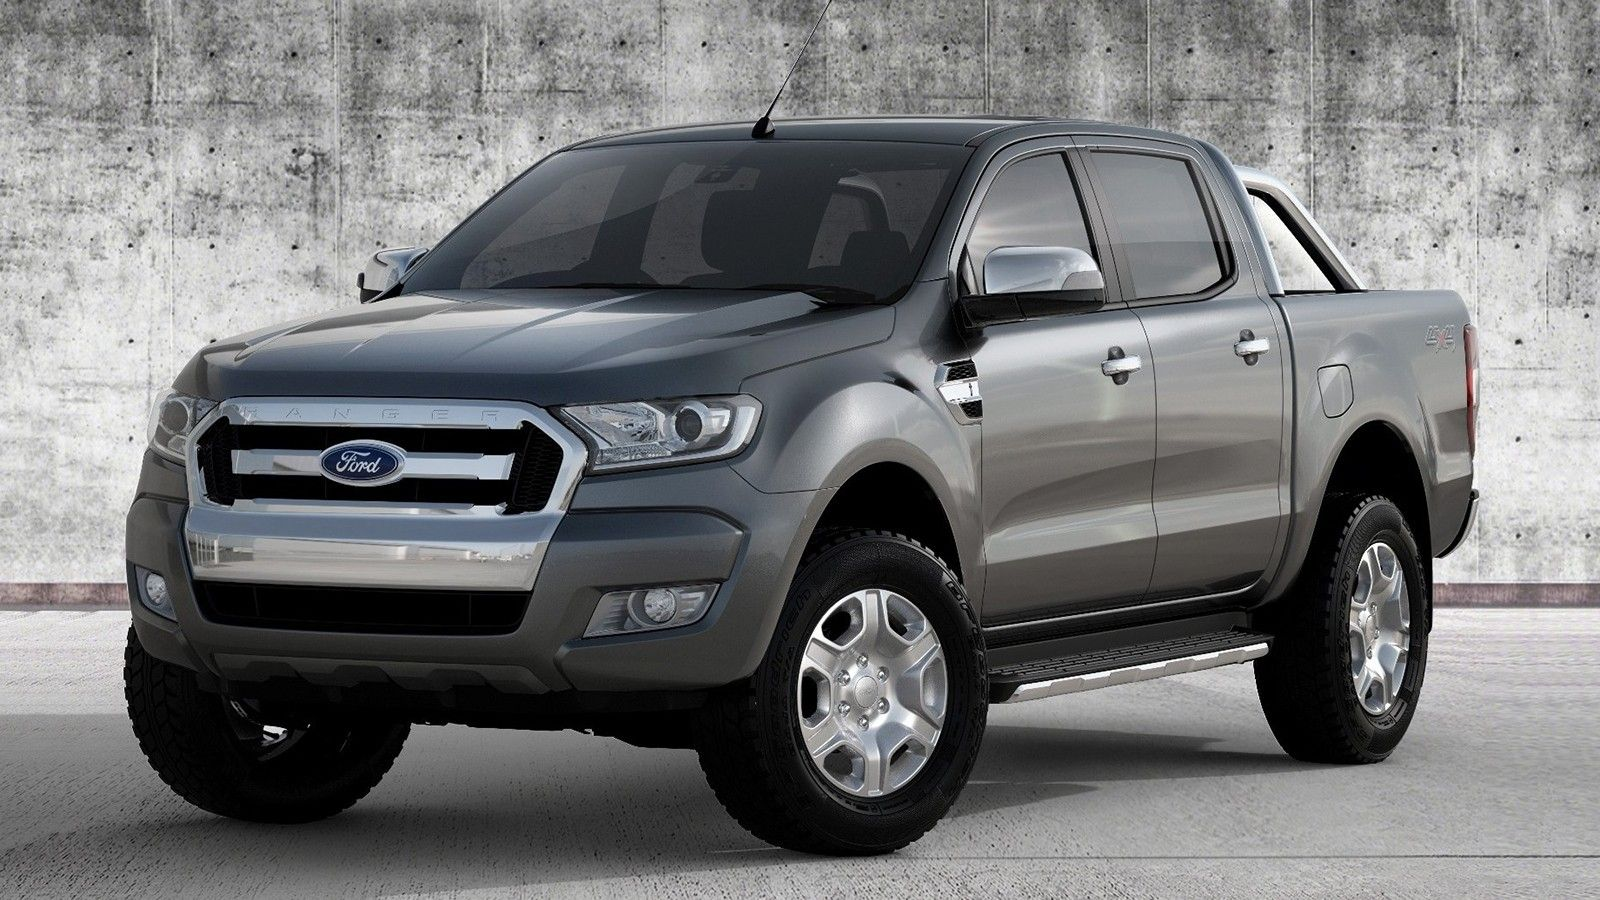 2017 ford ranger review perfomance and price httpsfordcarhqcom